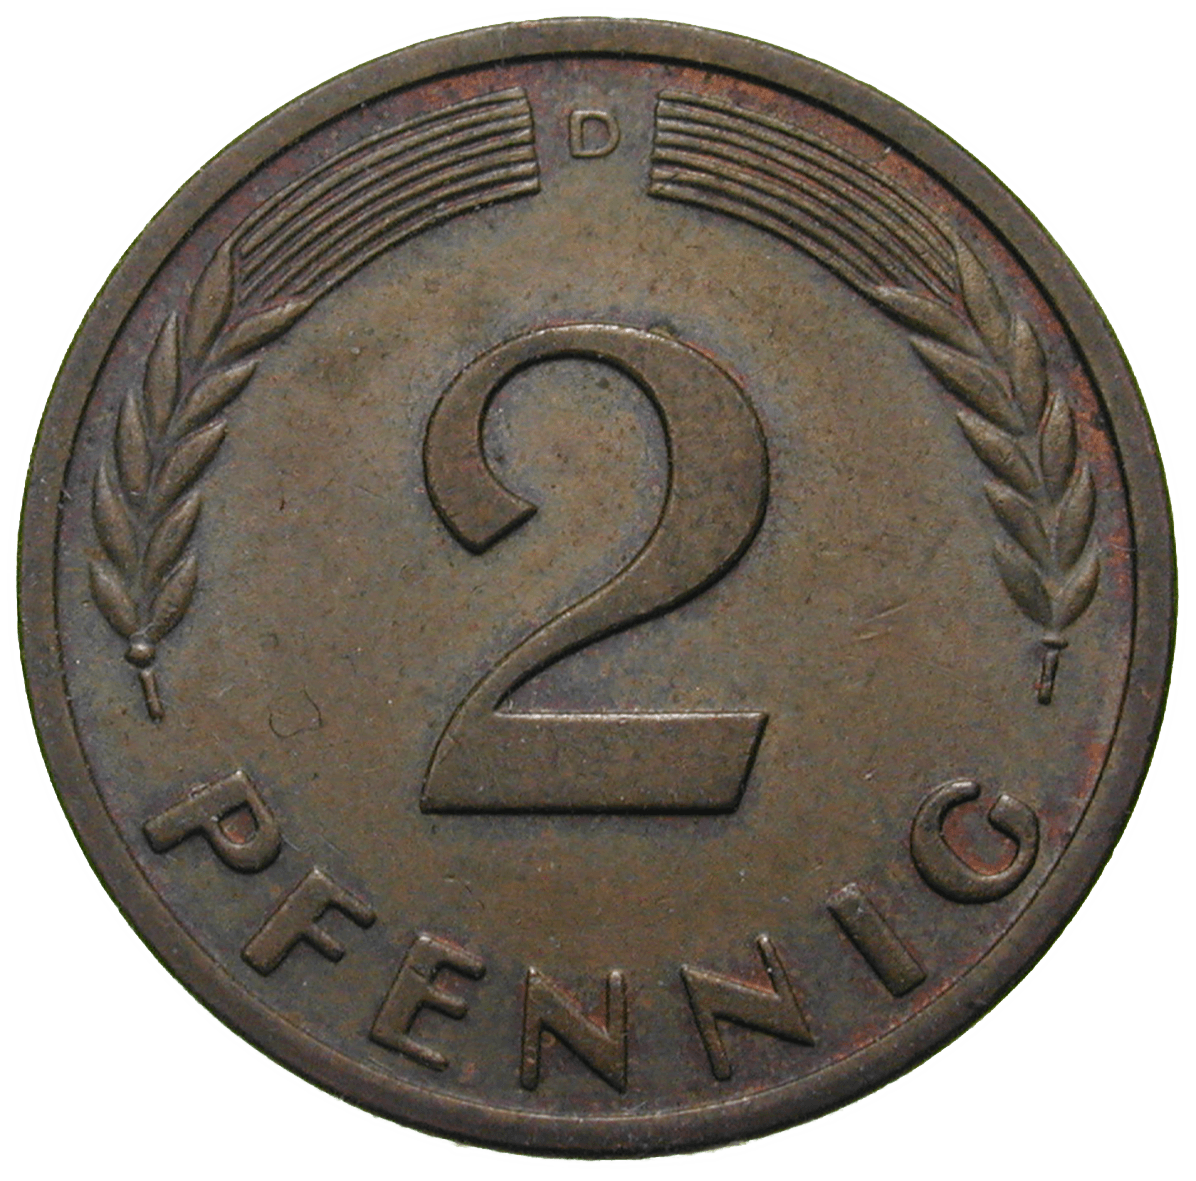 Federal Republic of Germany, 2 Pfennig 1950 (obverse)